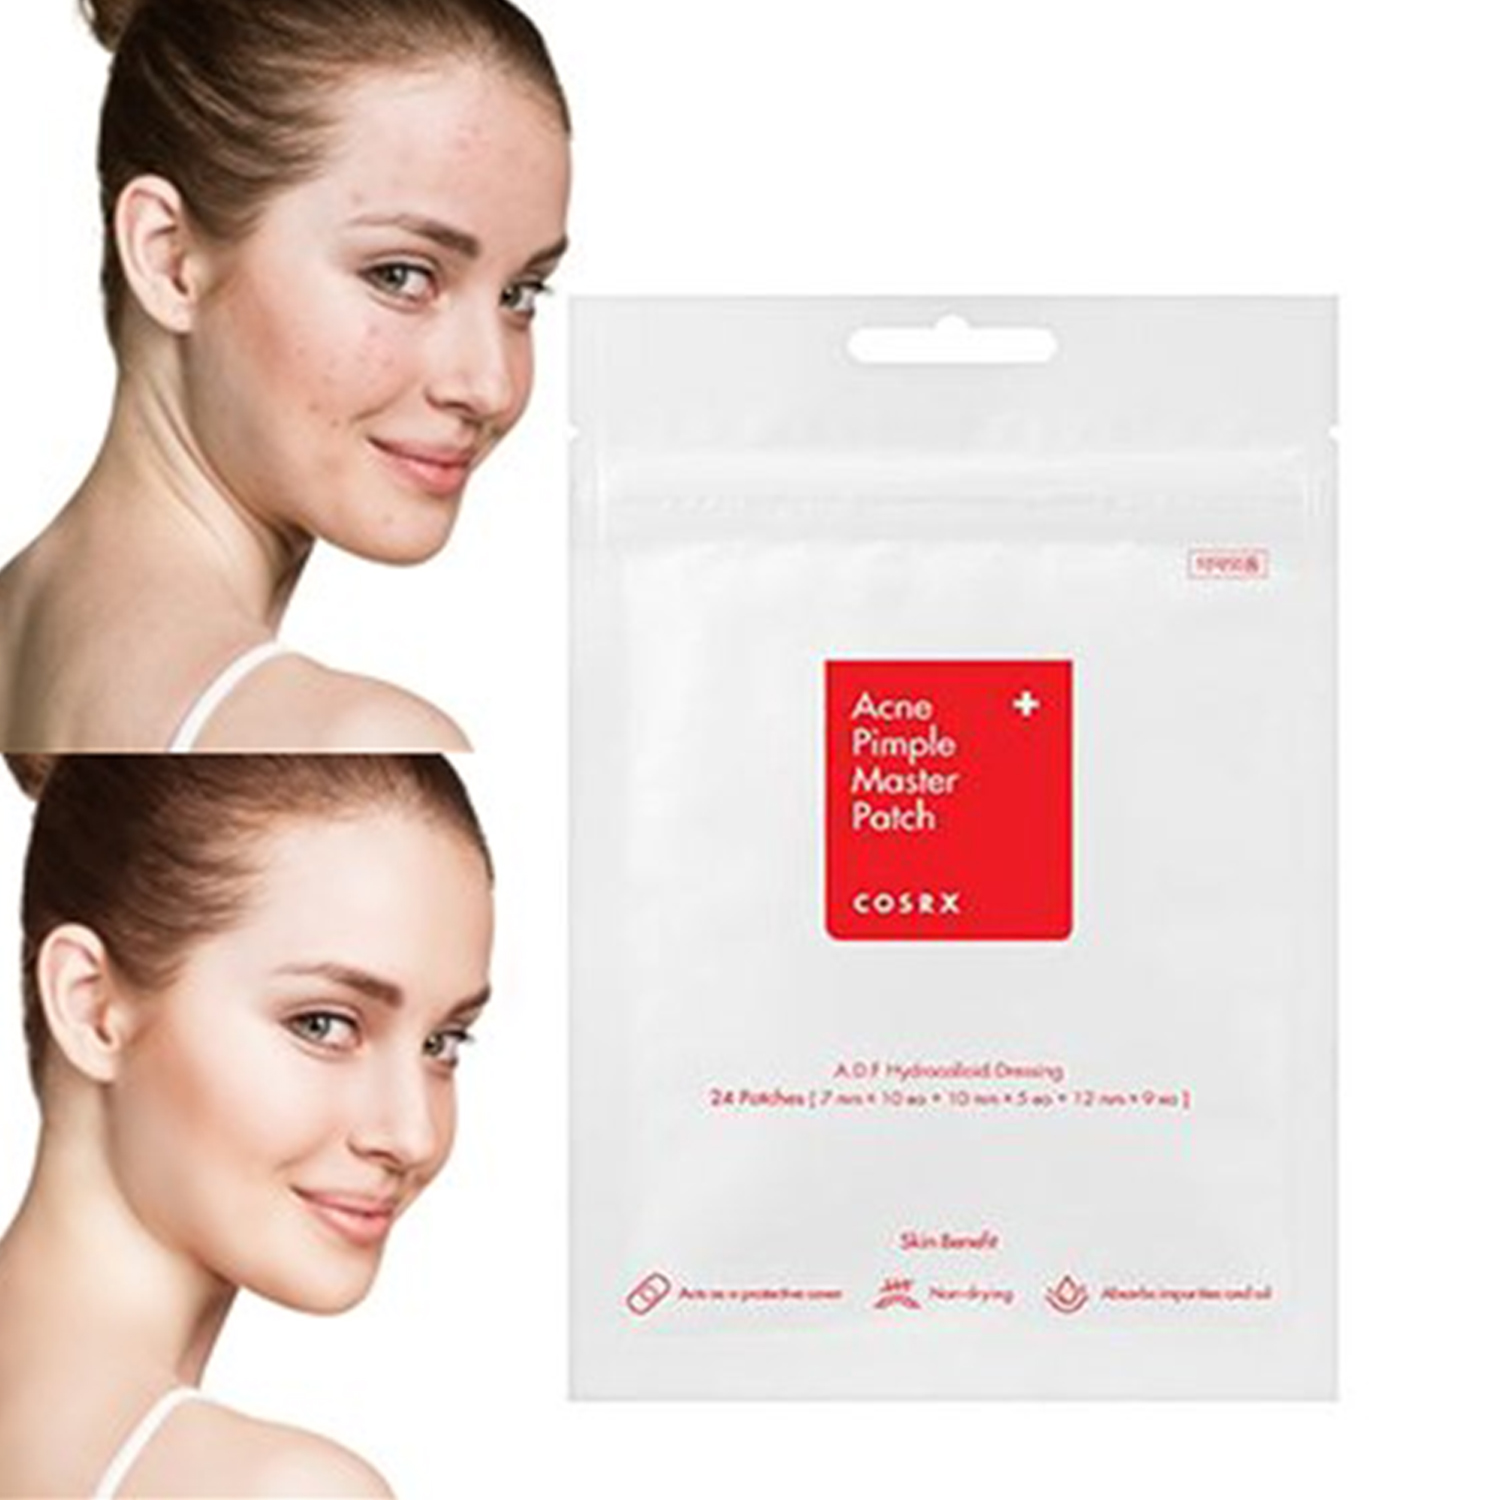 Korea Cosmetic  Acne Pimple Master Patch 24 Patches Face Skin Care Anti Acne Pimple Treatment Blemish Acne Remover DROP SHIPKorea Cosmetic  Acne Pimple Master Patch 24 Patches Face Skin Care Anti Acne Pimple Treatment Blemish Acne Remover DROP SHIP